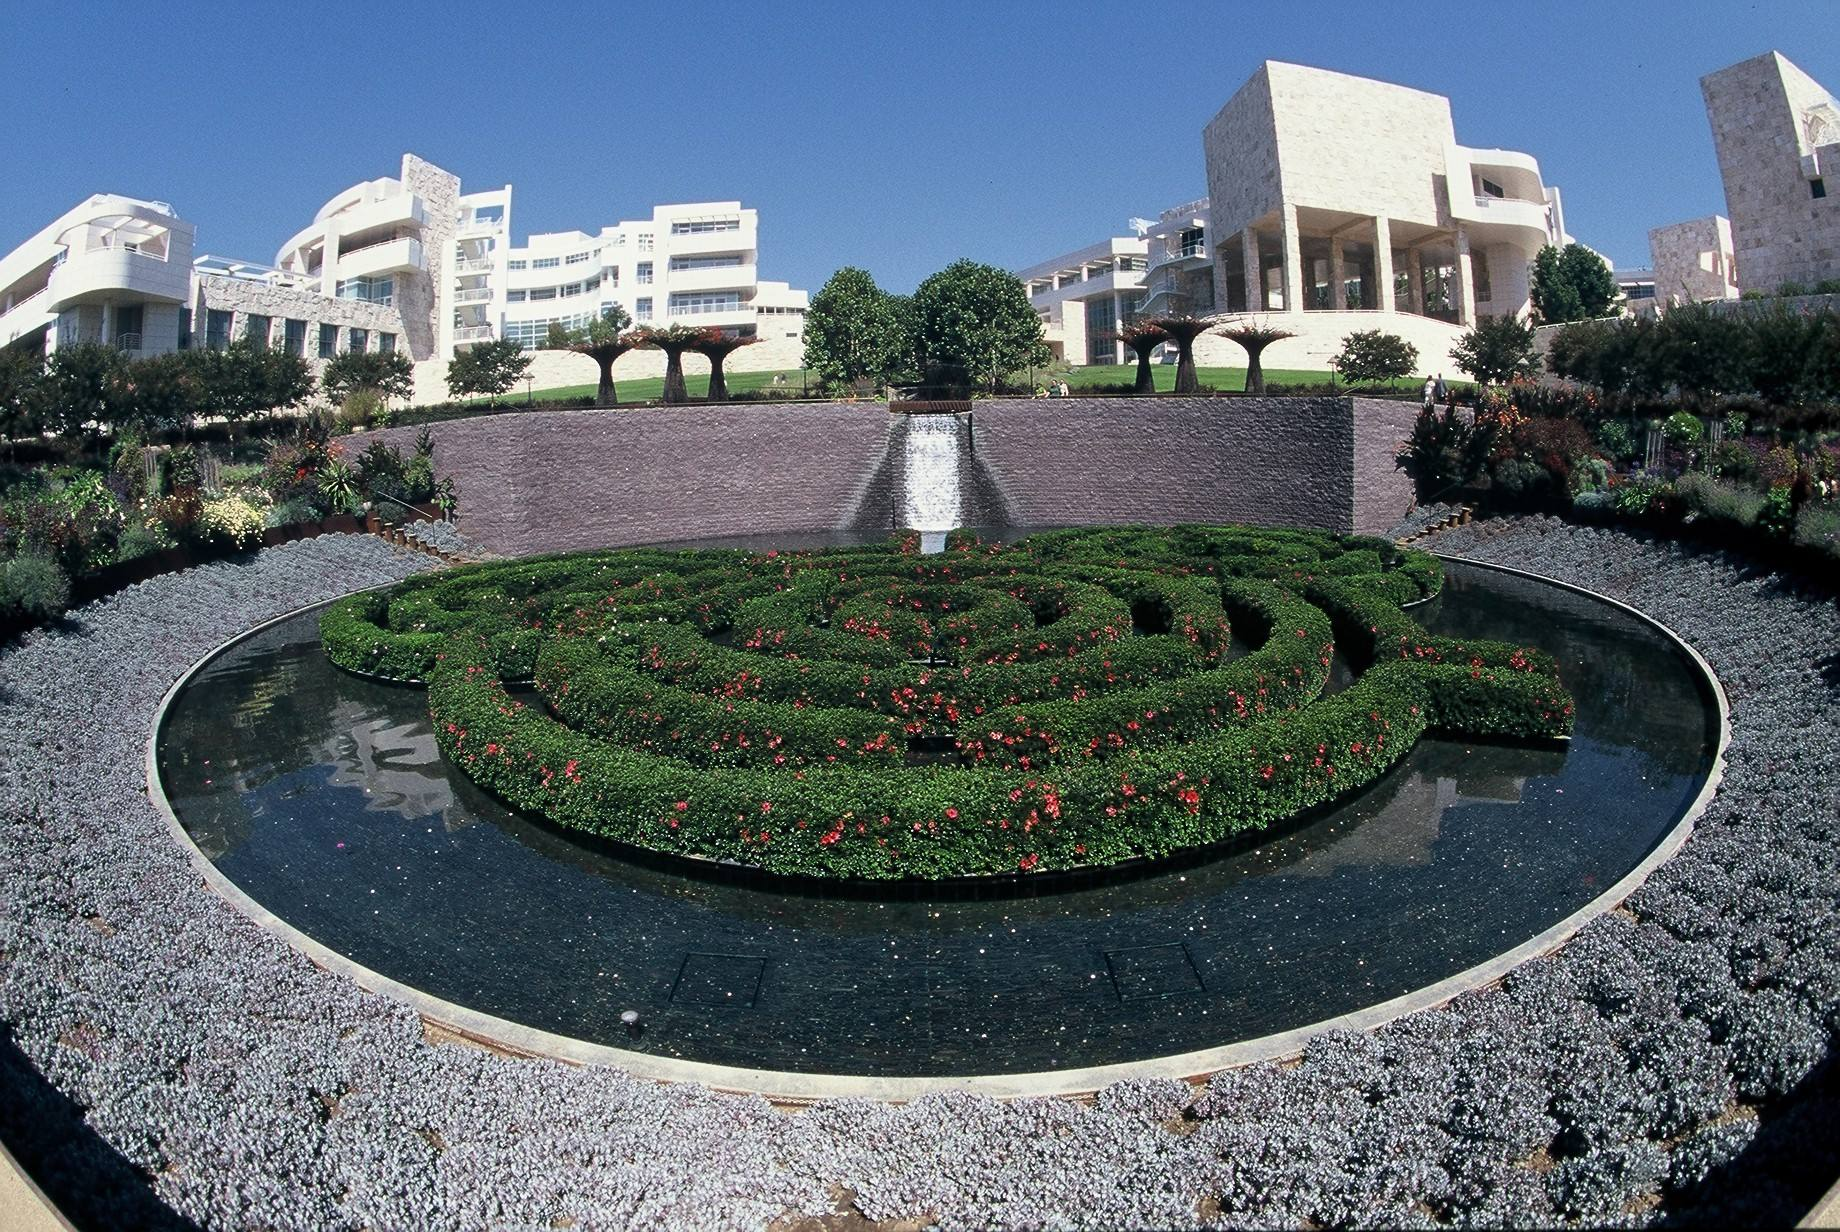 The Top 10 Must Sees Hidden Gems Of The Getty Center